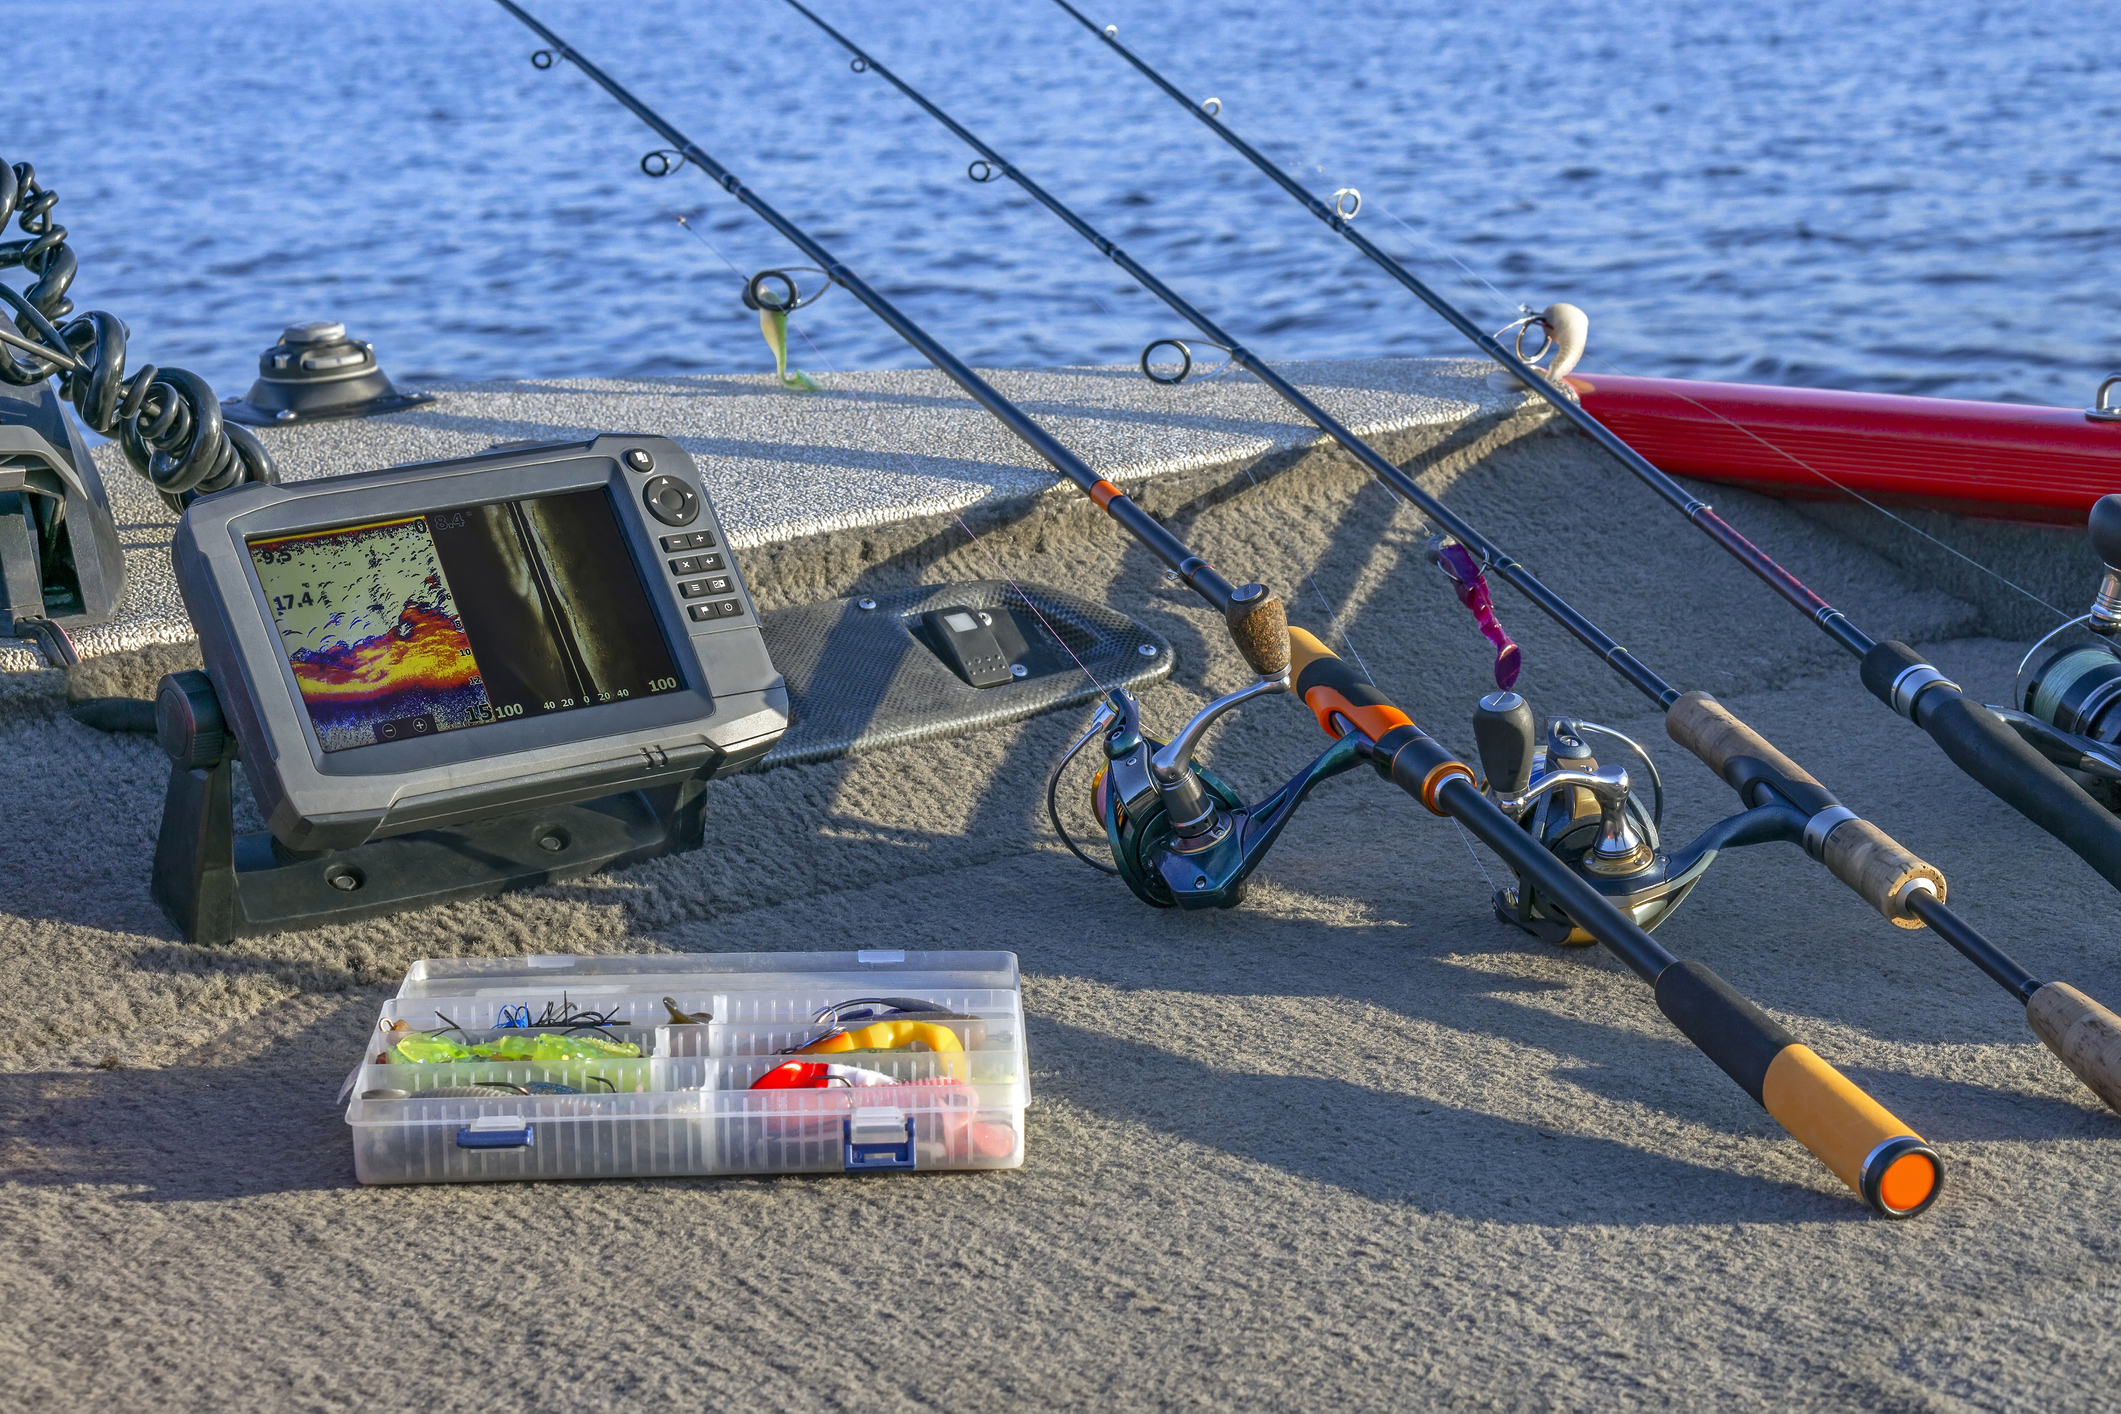 Array of fishing gear, including a high-tech fish finder.